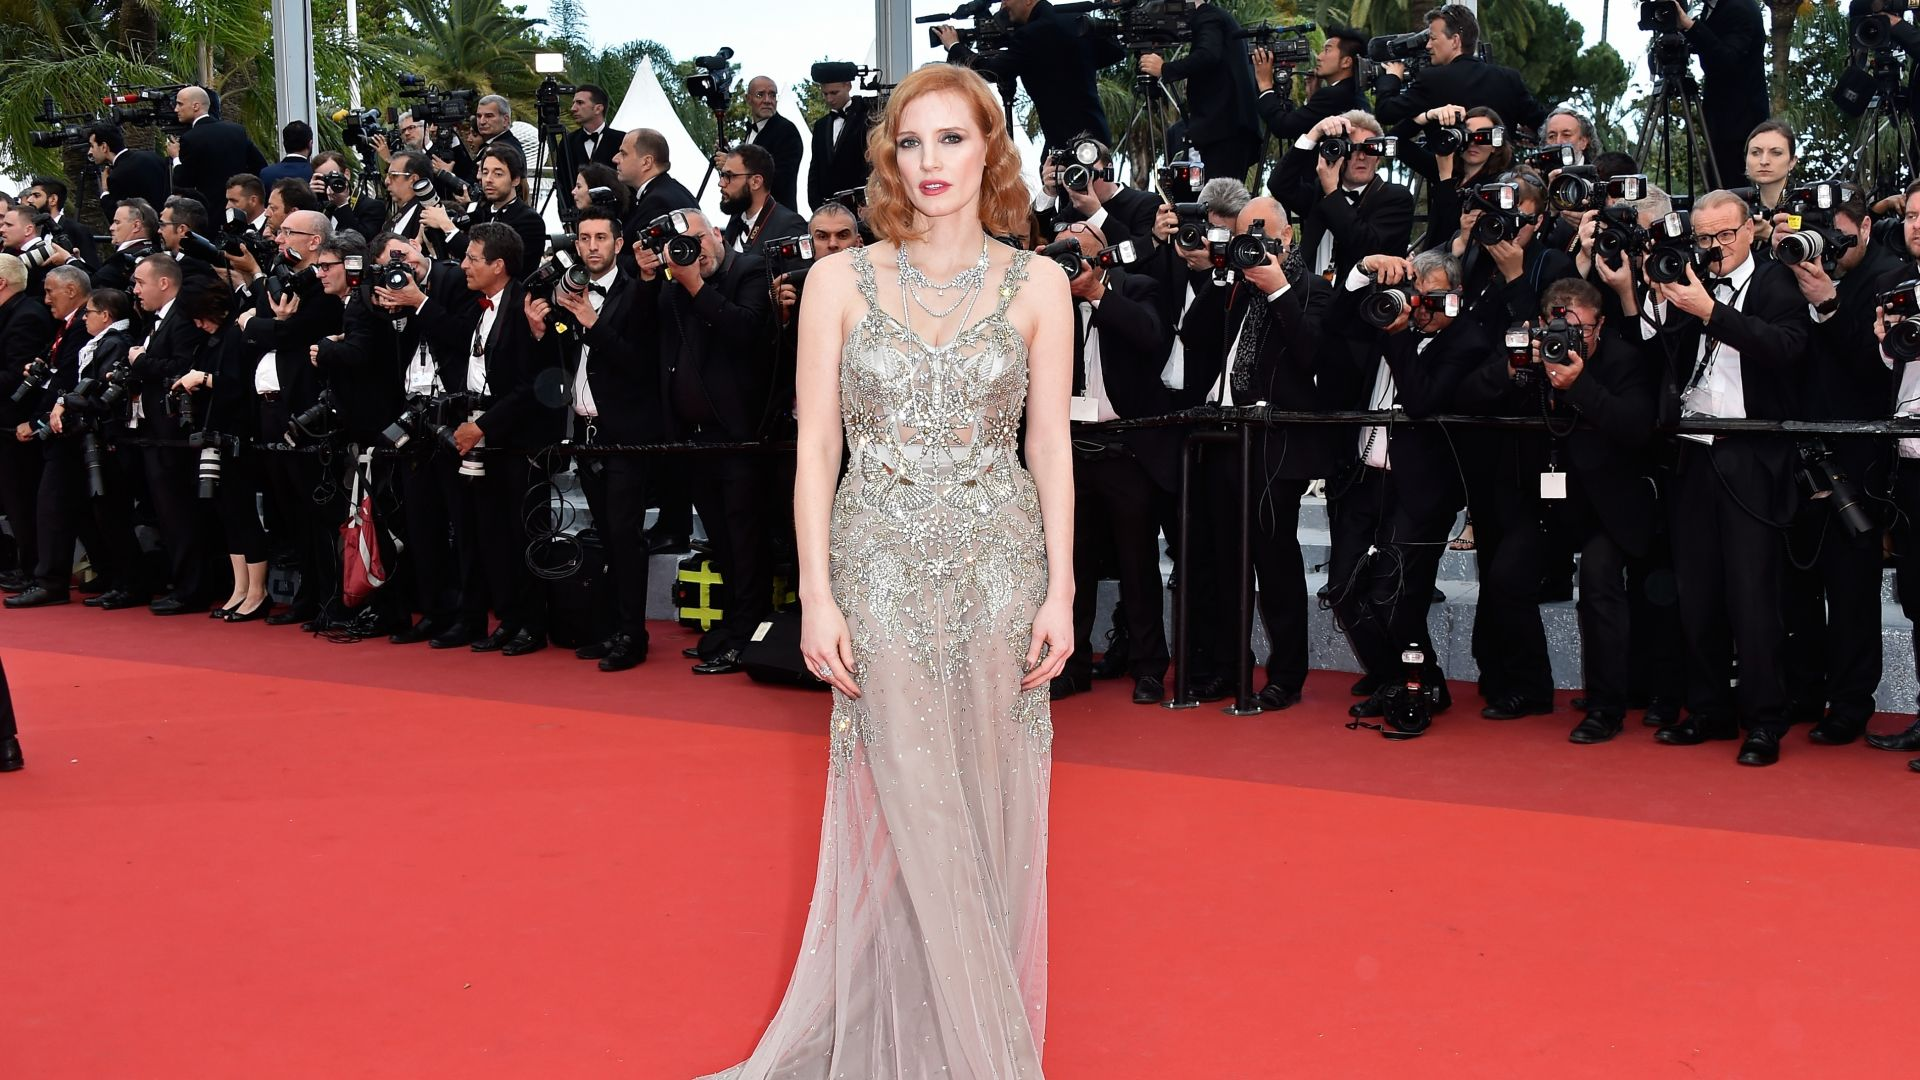 ДЖессика Честейн, Каннский кинофестиваль 2016, красная дорожка, Jessica Chastain, Cannes Film Festival 2016, red carpet (horizontal)